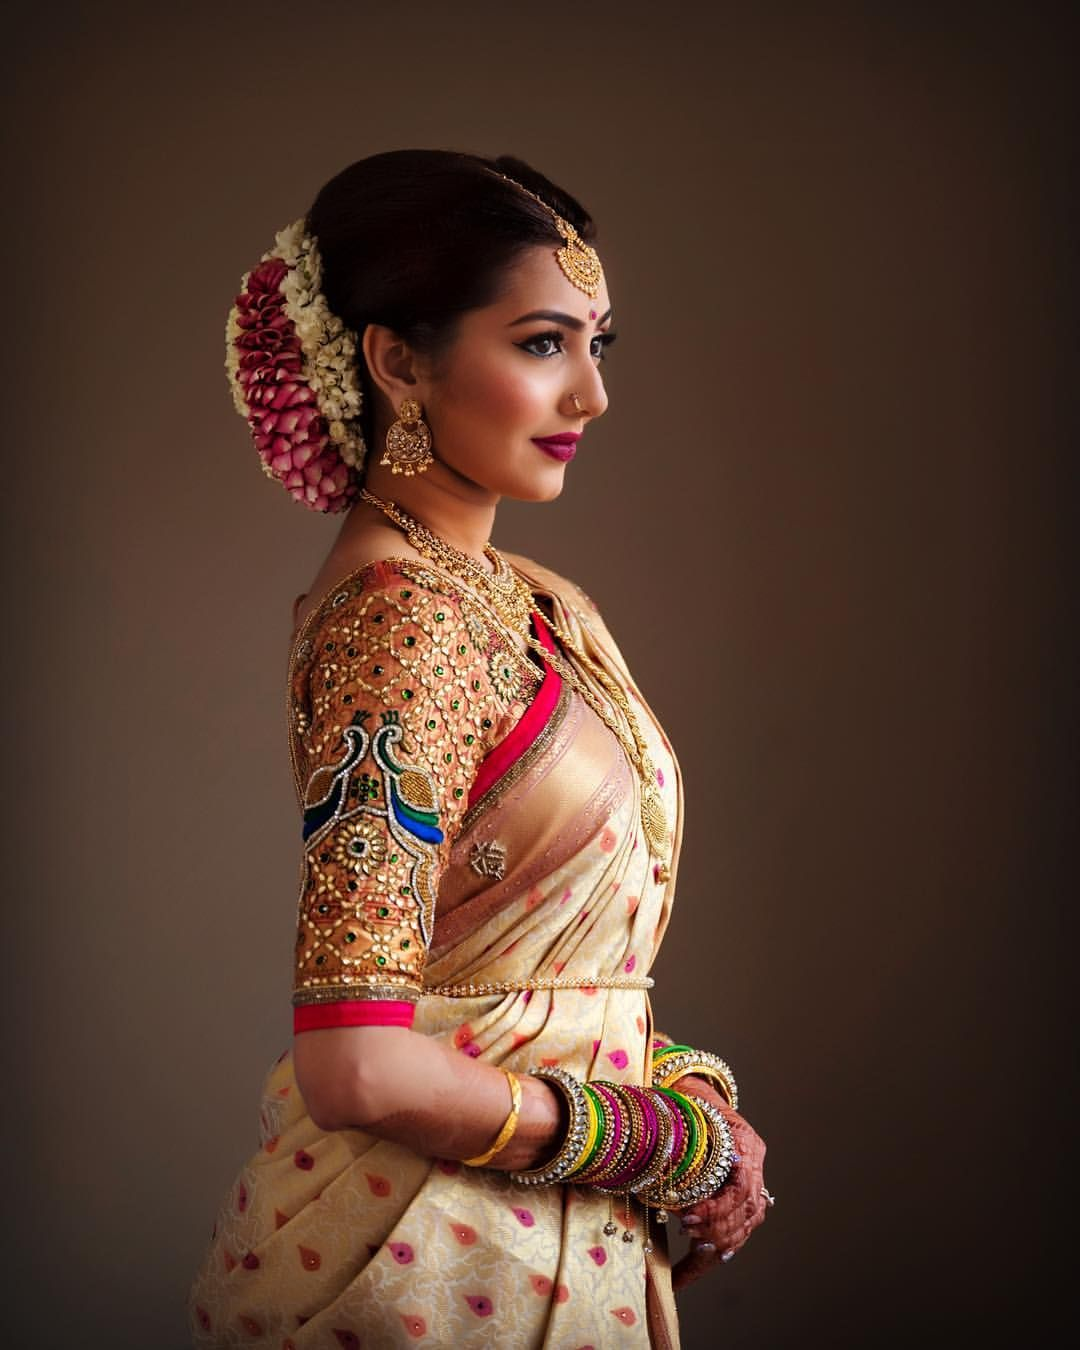 Latest Pics Of Kerala Brides: South Indian Bride. Gold Indian Bridal Jewelry.Temple